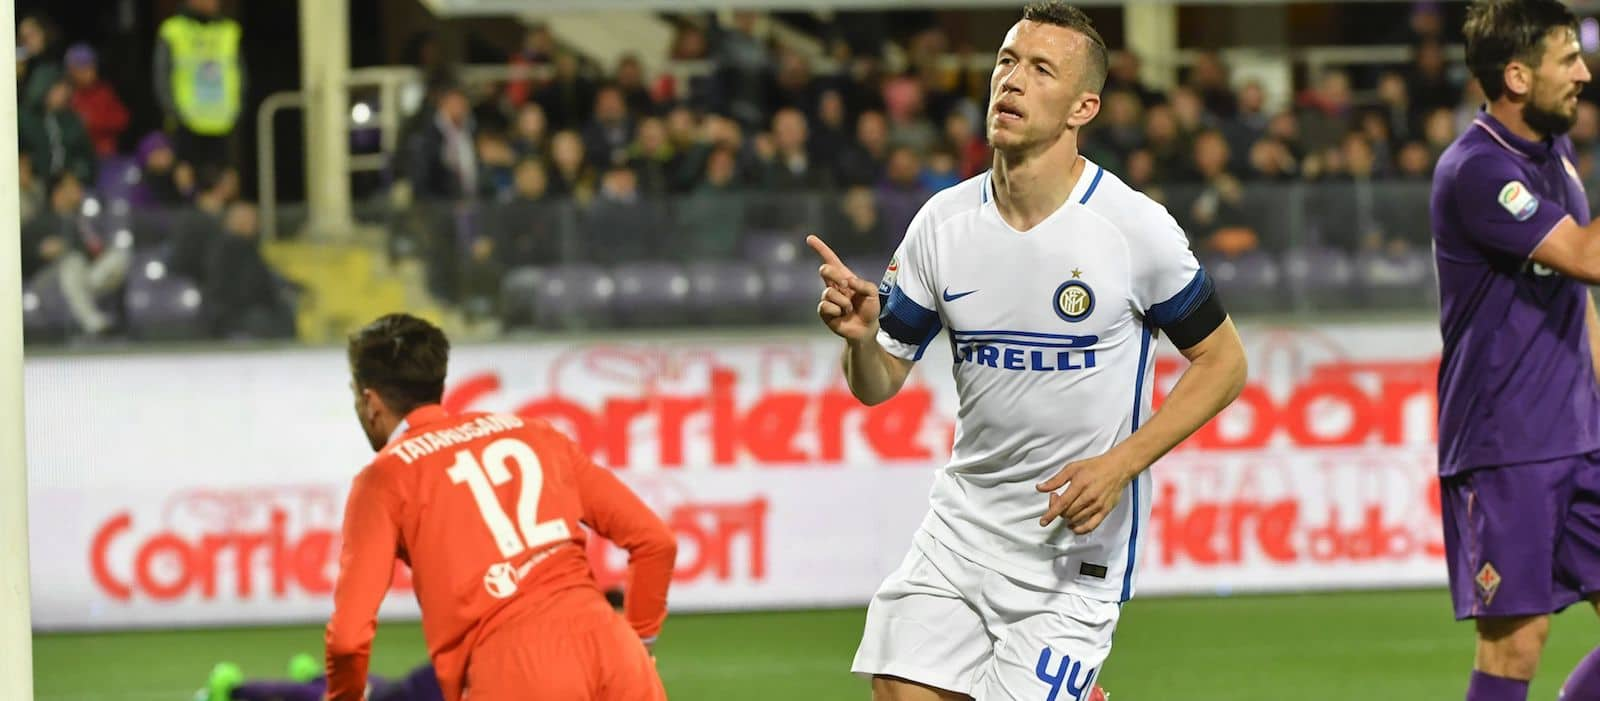 From Italy: Inter Milan open to selling top Jose Mourinho target Ivan Perisic next summer